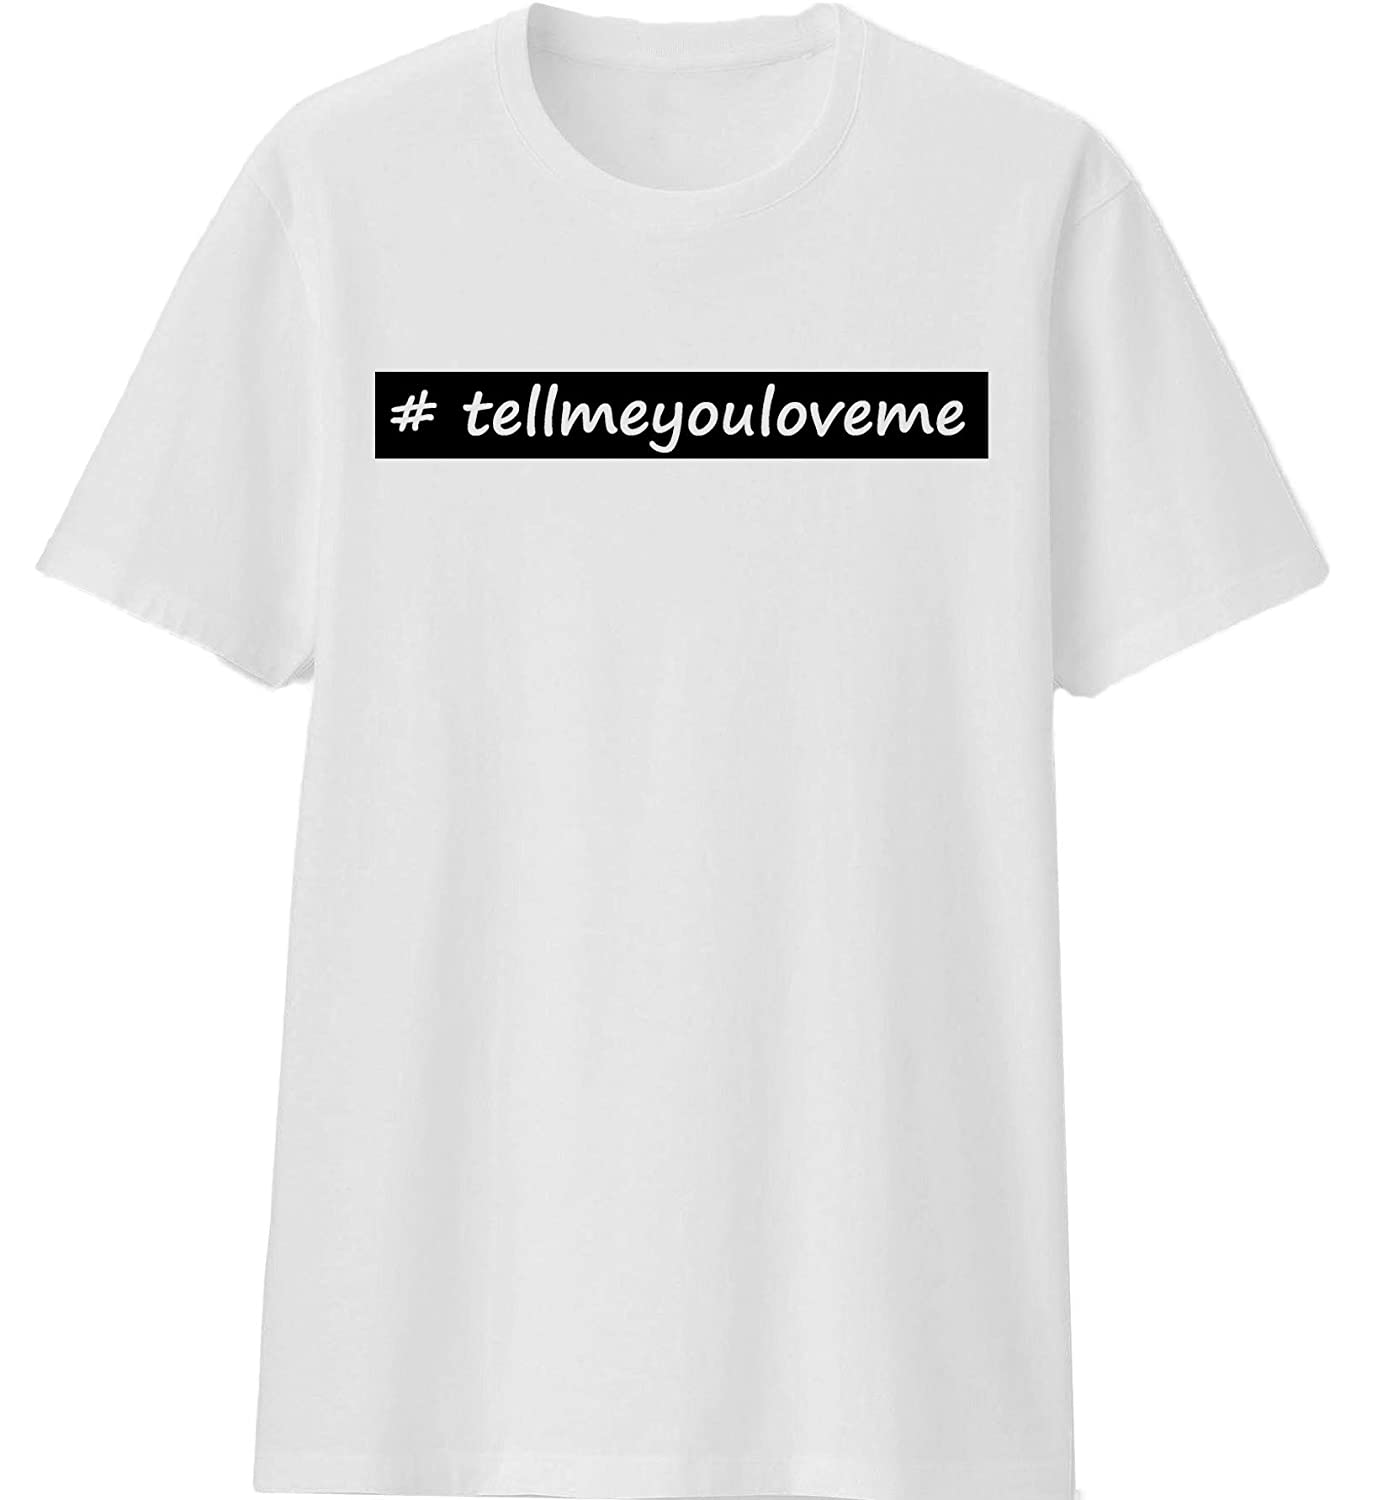 Love Tell co You ShirtAmazon Me Raze ukClothing Womens T London N8Om0wvyn